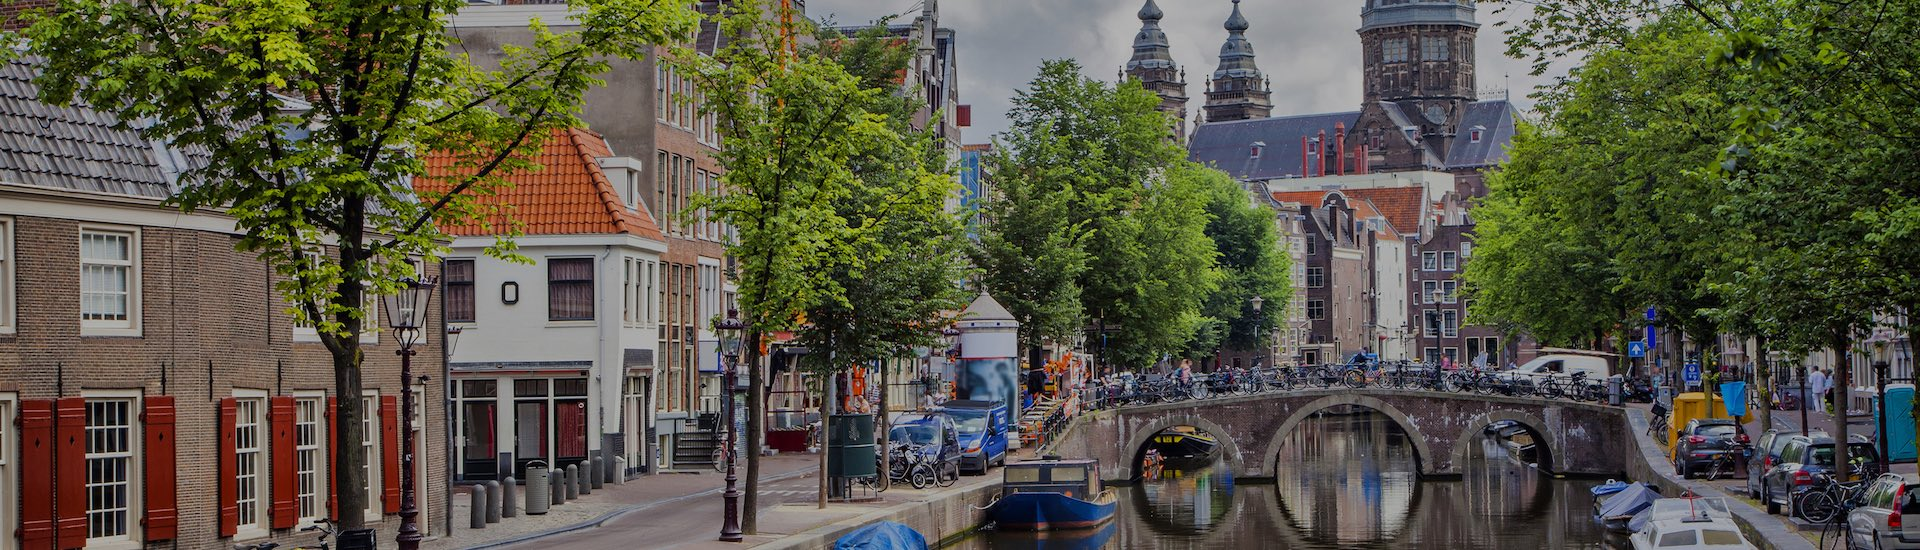 hostels in the Netherlands